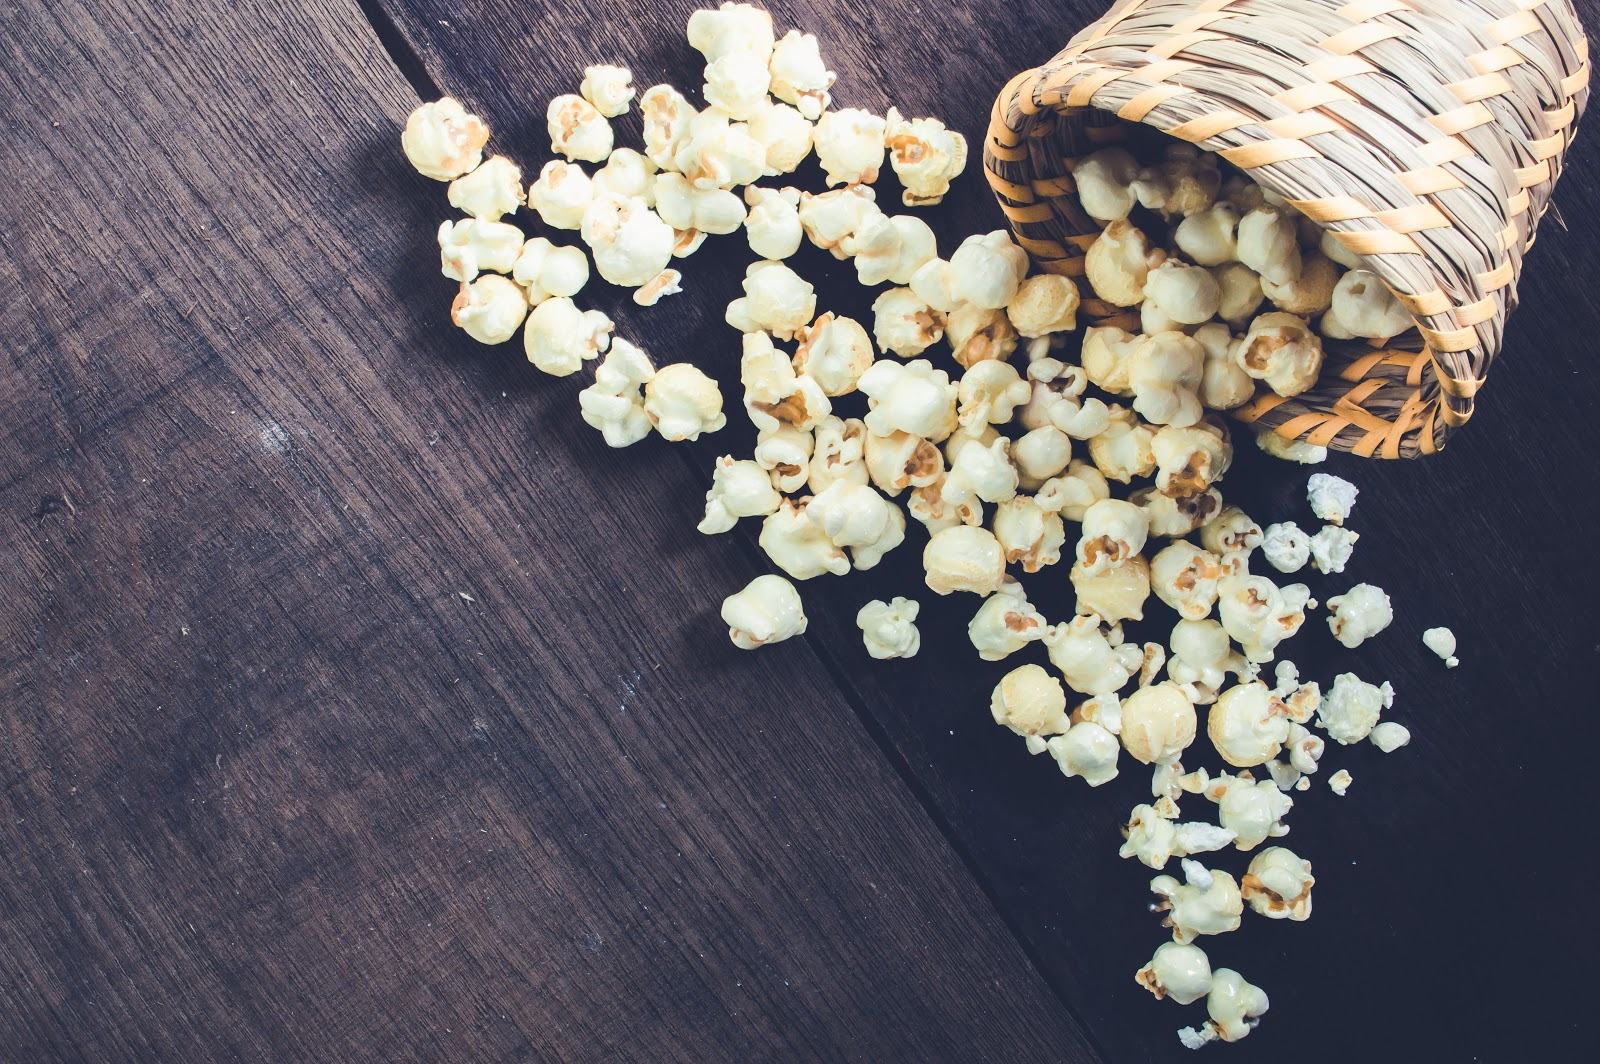 A scattering of popcorn on a wooden background